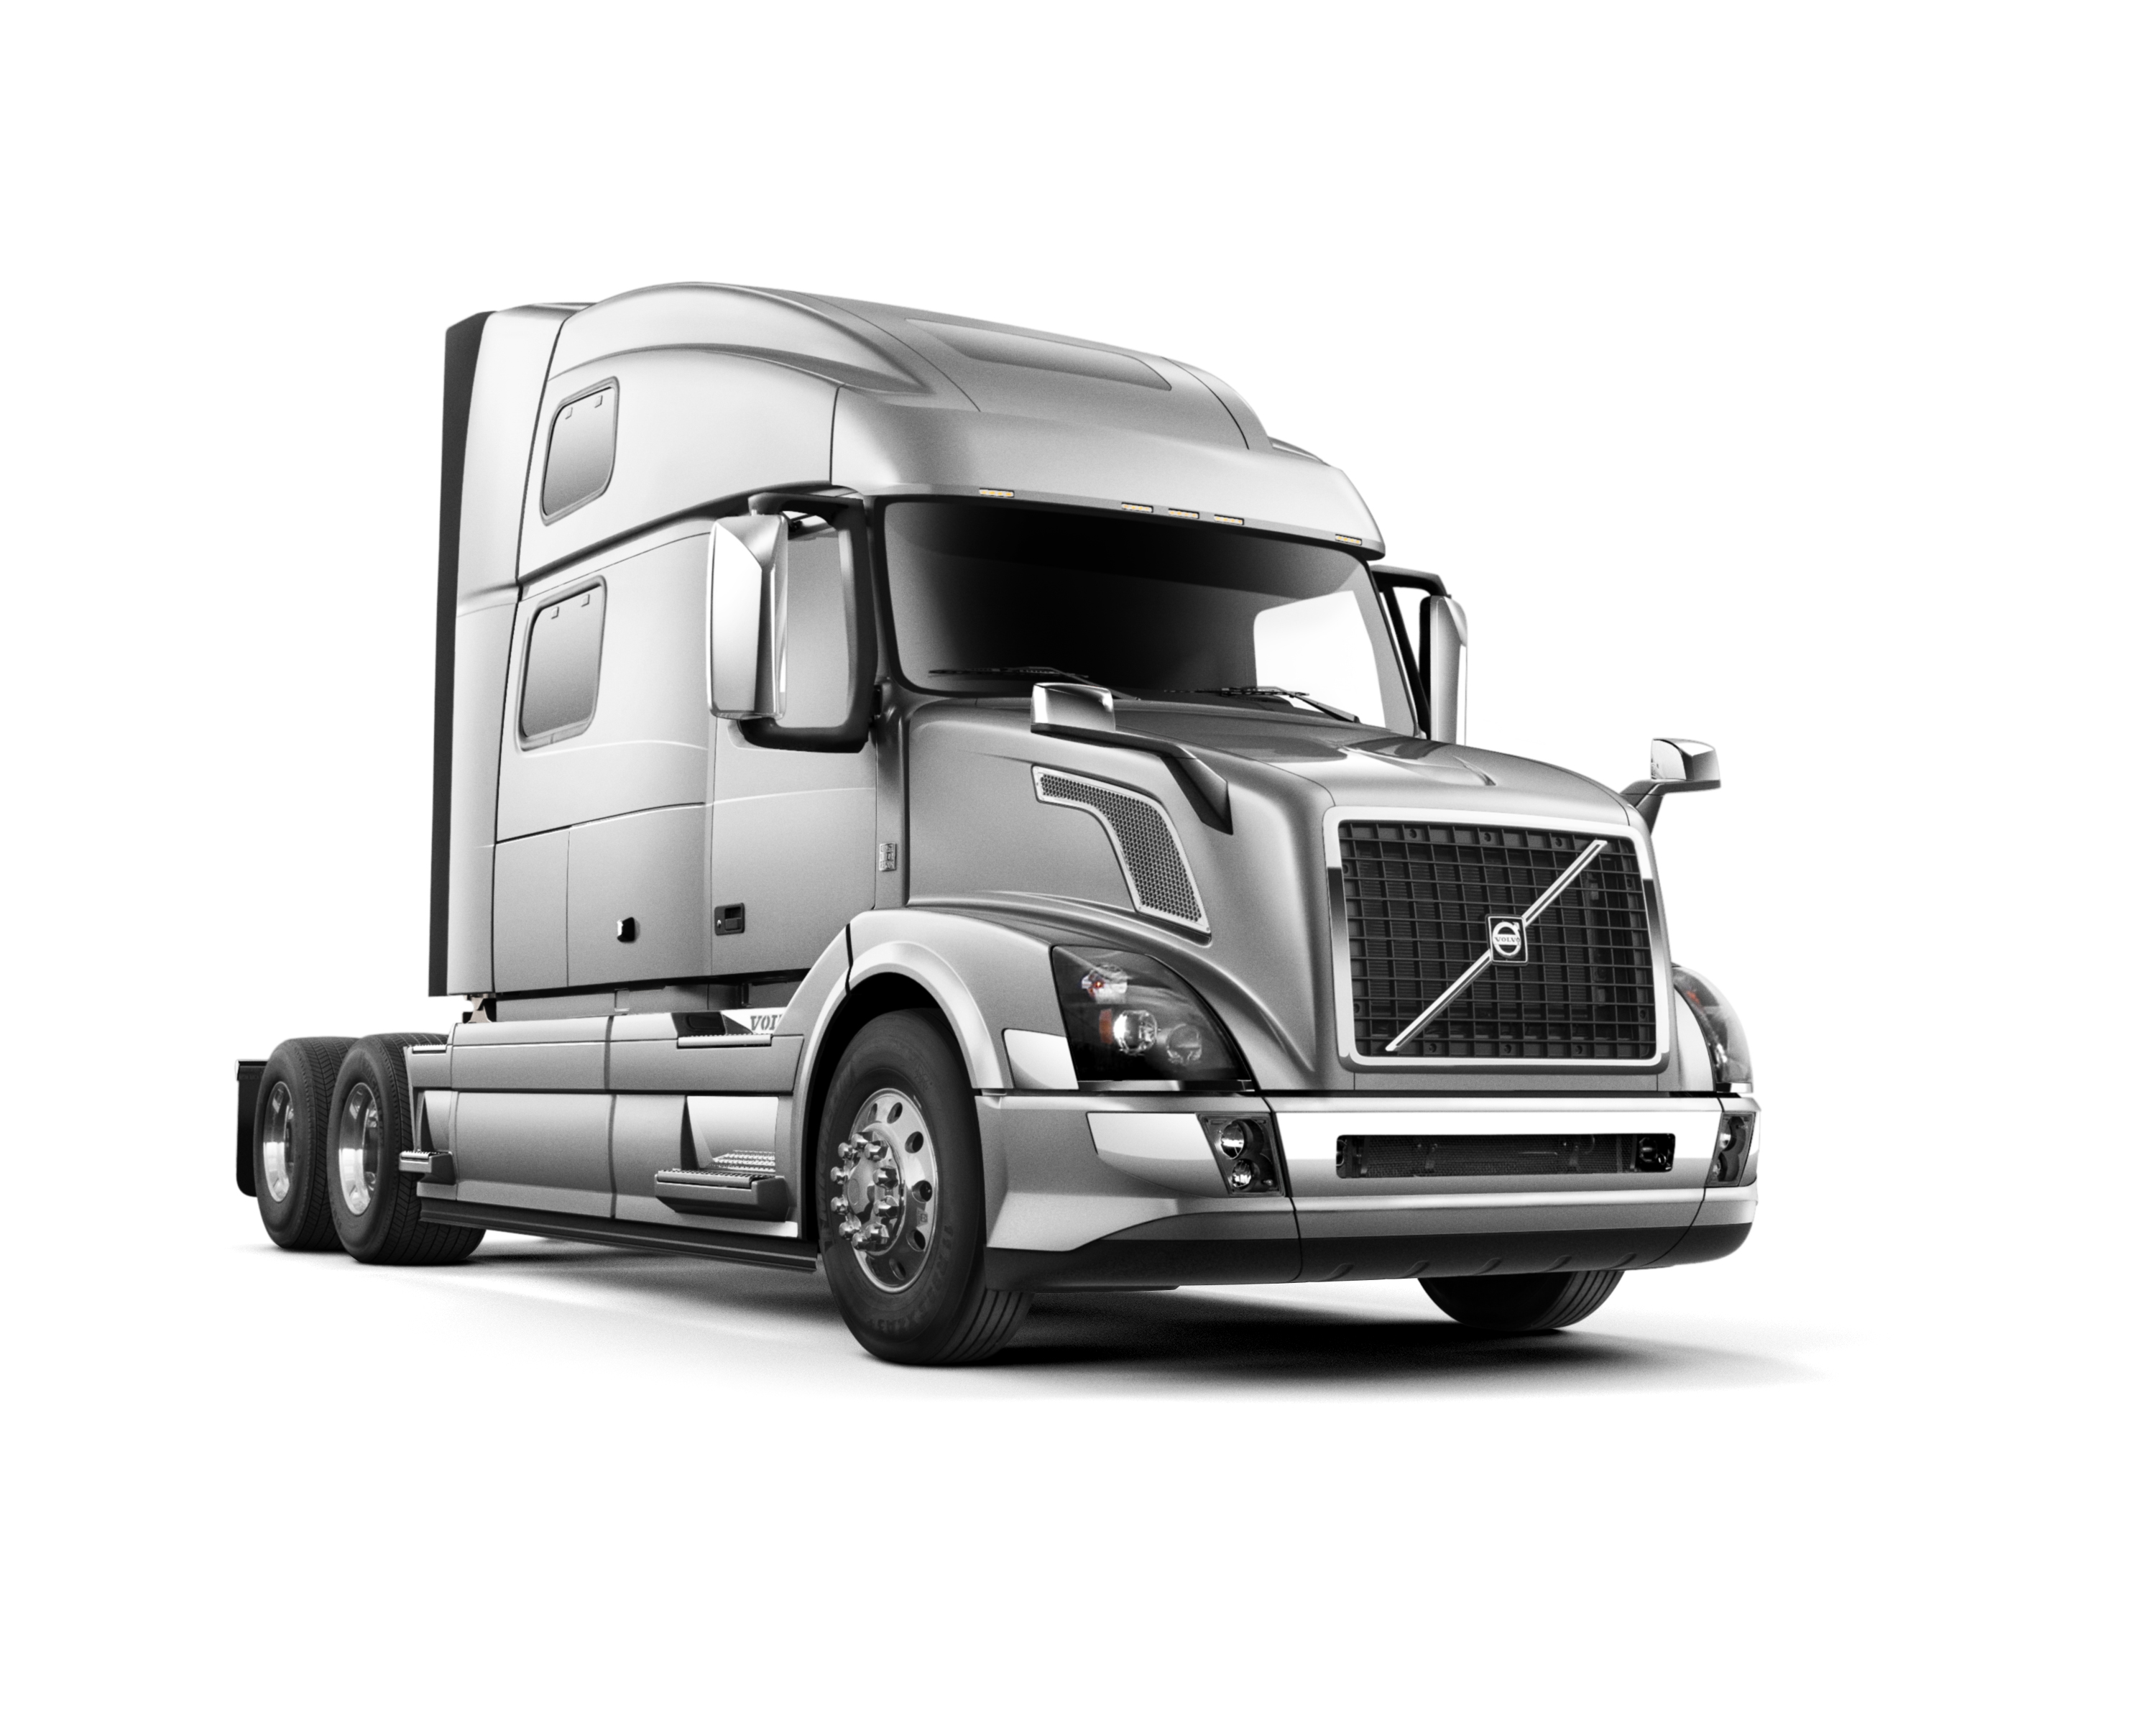 truck freightliner preview parts and semi for medium sale trucks used heavy duty volvo manitoba